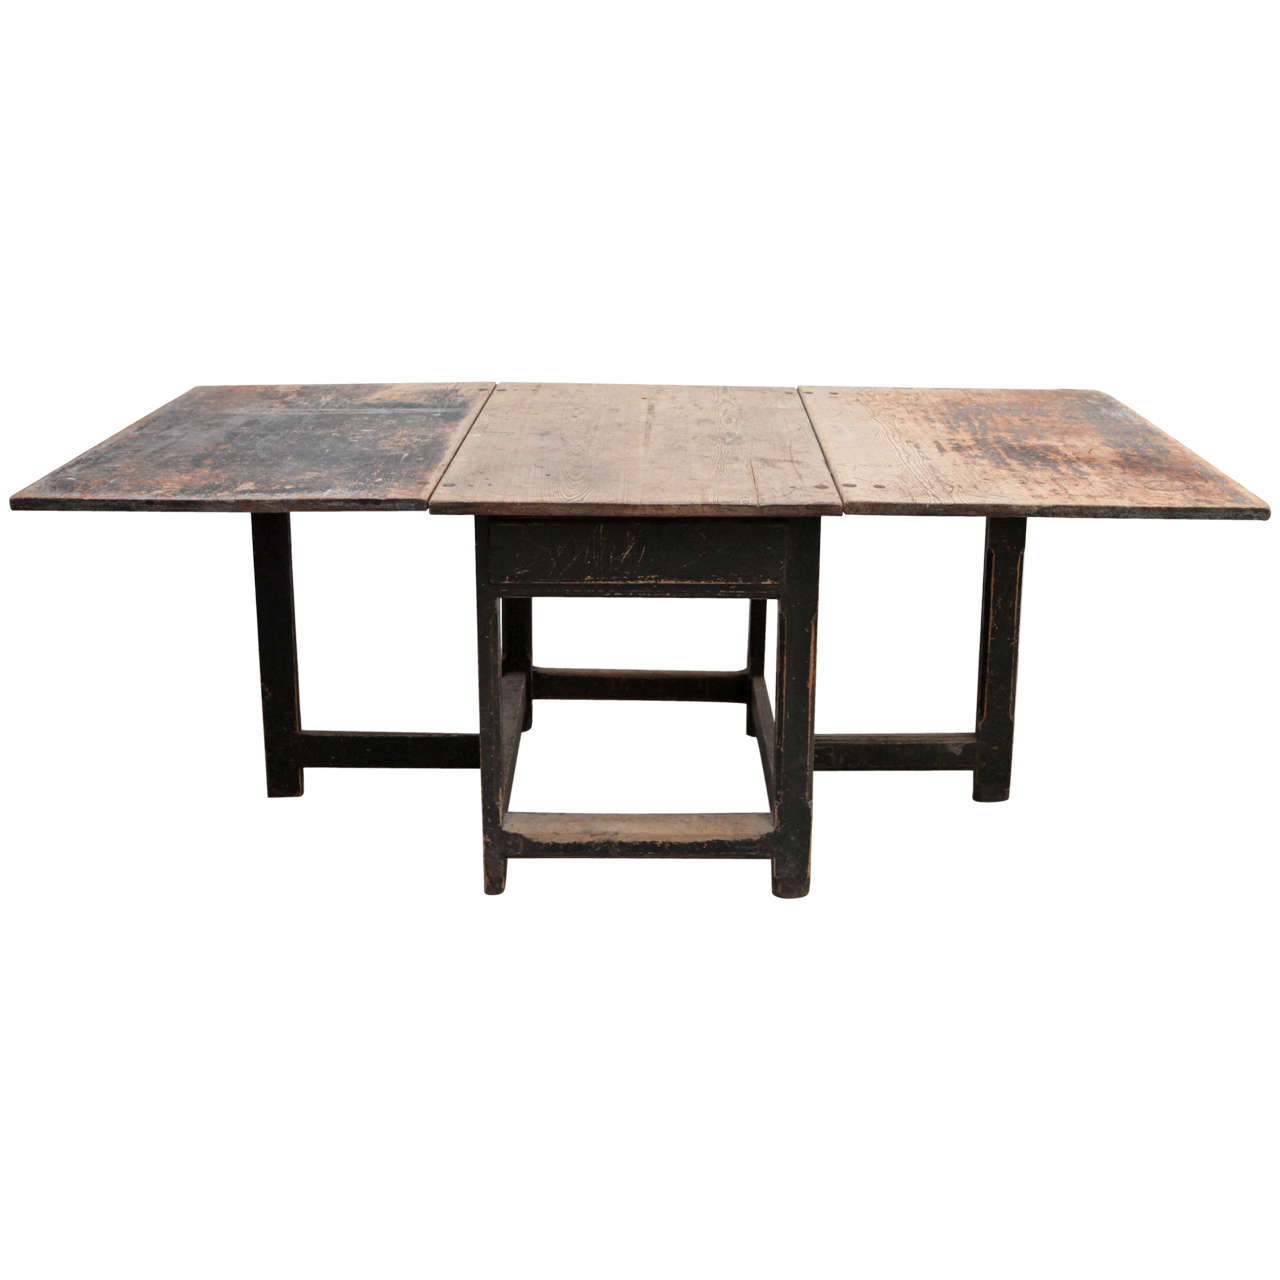 Large Swedish Gateleg Table 18th Century At 1stdibs. Full resolution  image, nominally Width 1280 Height 1280 pixels, image with #836048.